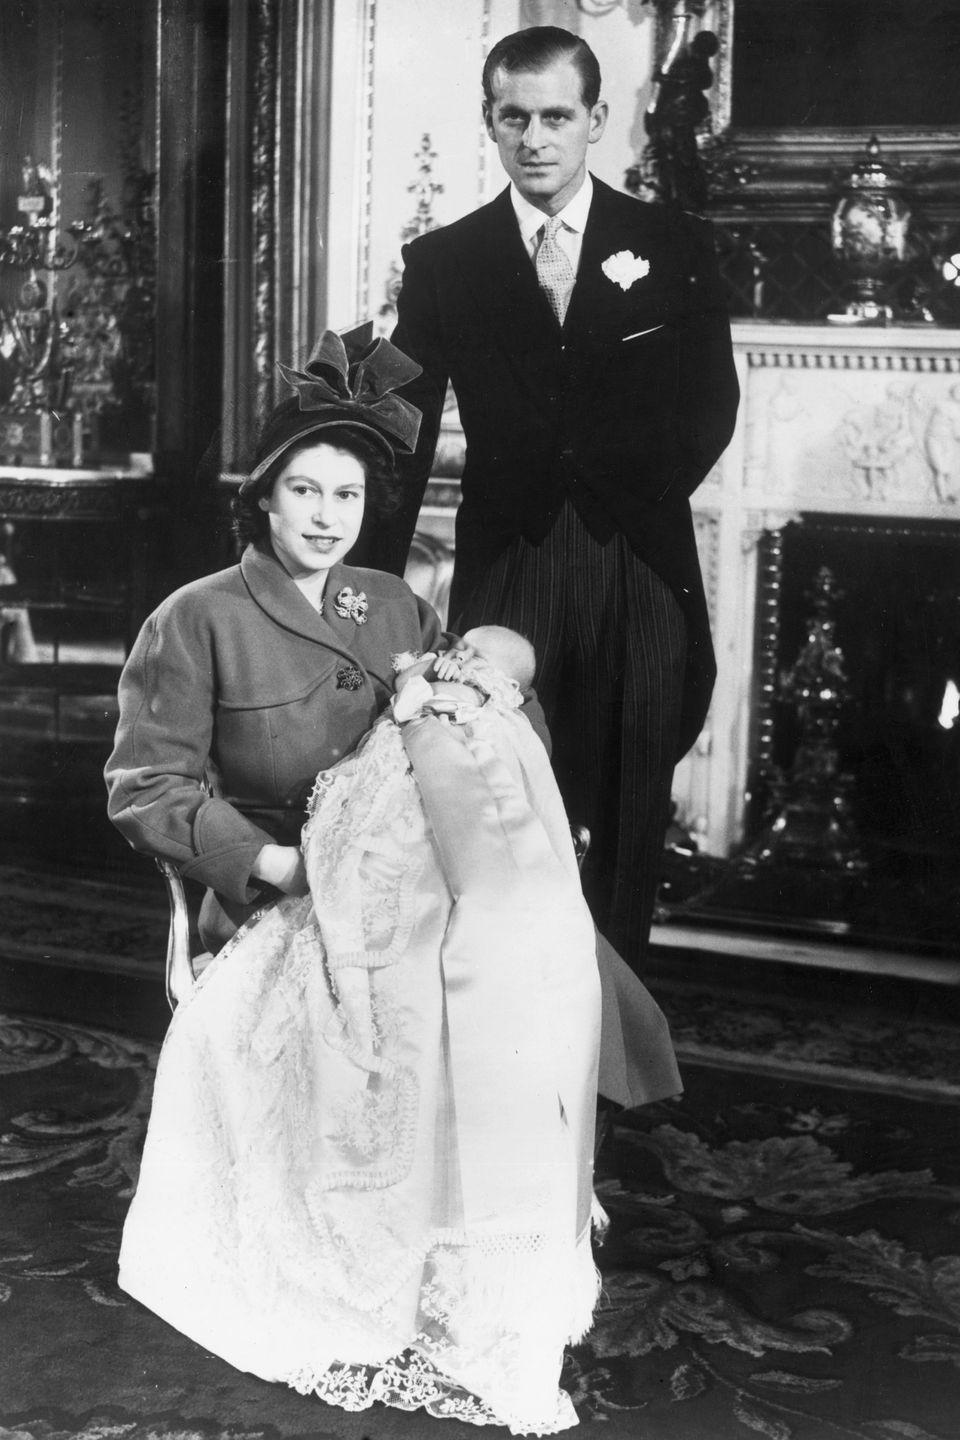 <p>An adorable family portrait of Princess Elizabeth and Prince Philip with their son Prince Charles.</p>